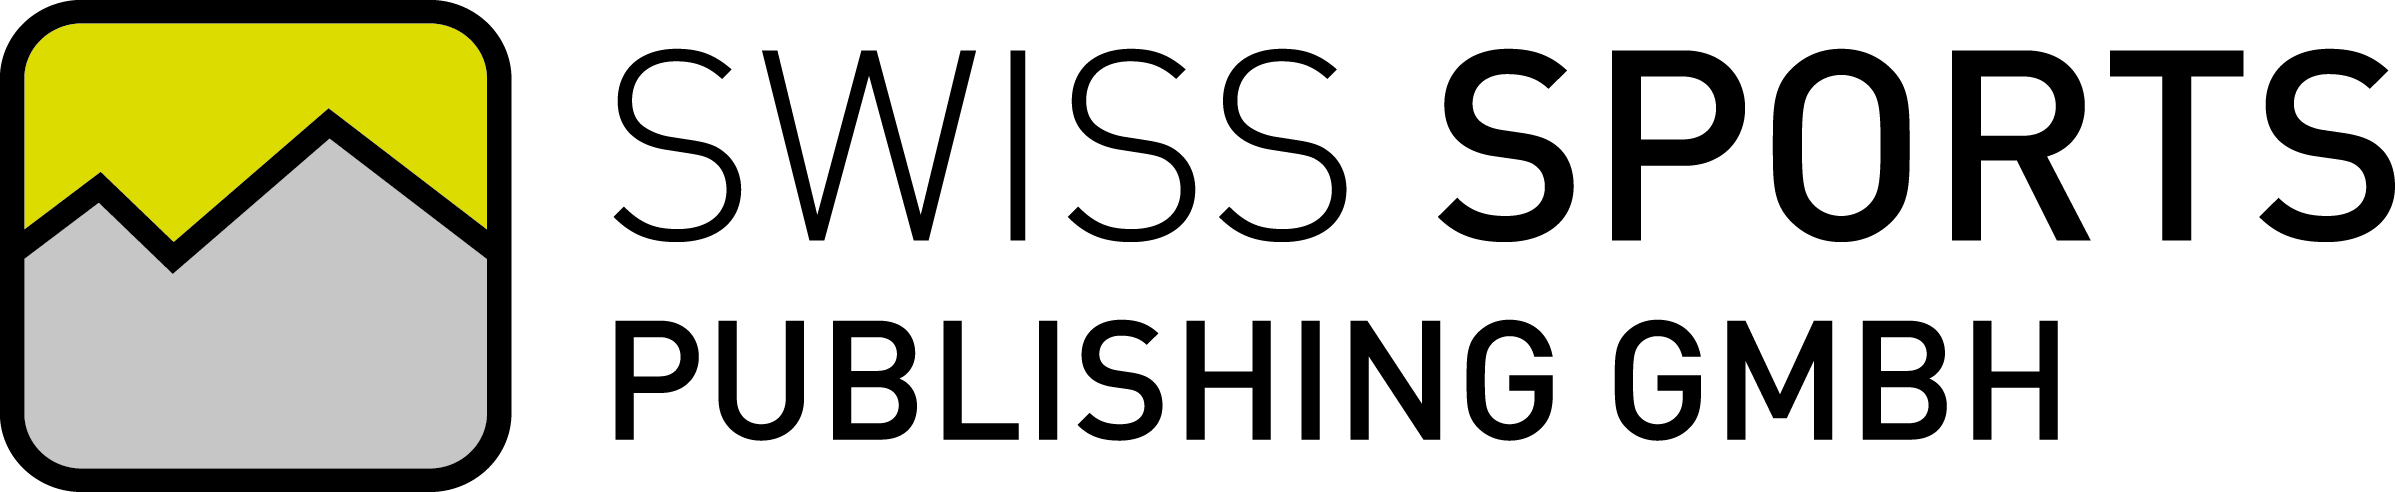 Swiss Sports Publishing GmbH